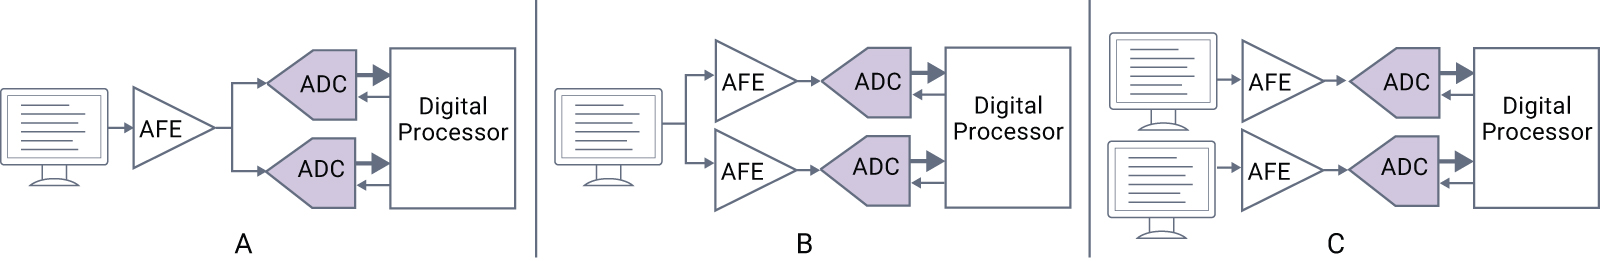 Figure 2: Functional redundancy for identifying operational fails in the ADC